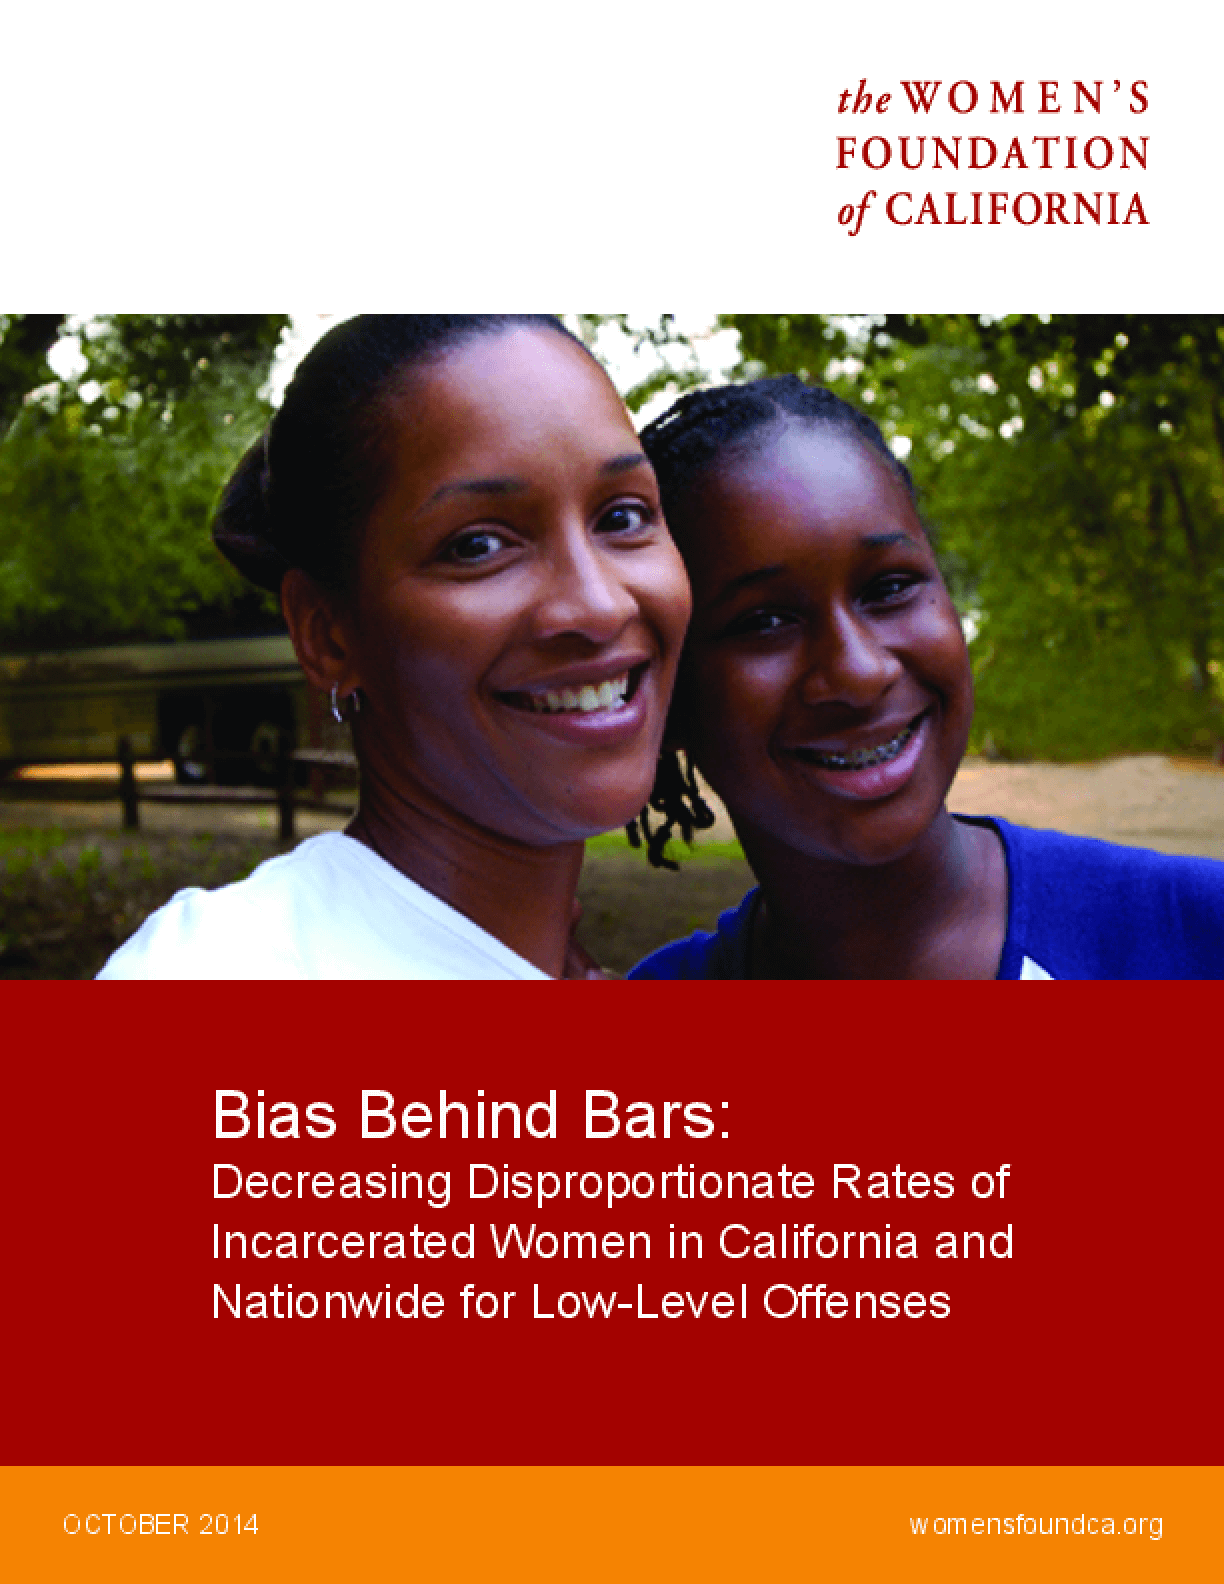 Bias Behind Bars: Decreasing Disproportionate Rates of Incarcerated Women in California and Nationwide for Low-Level Offenses